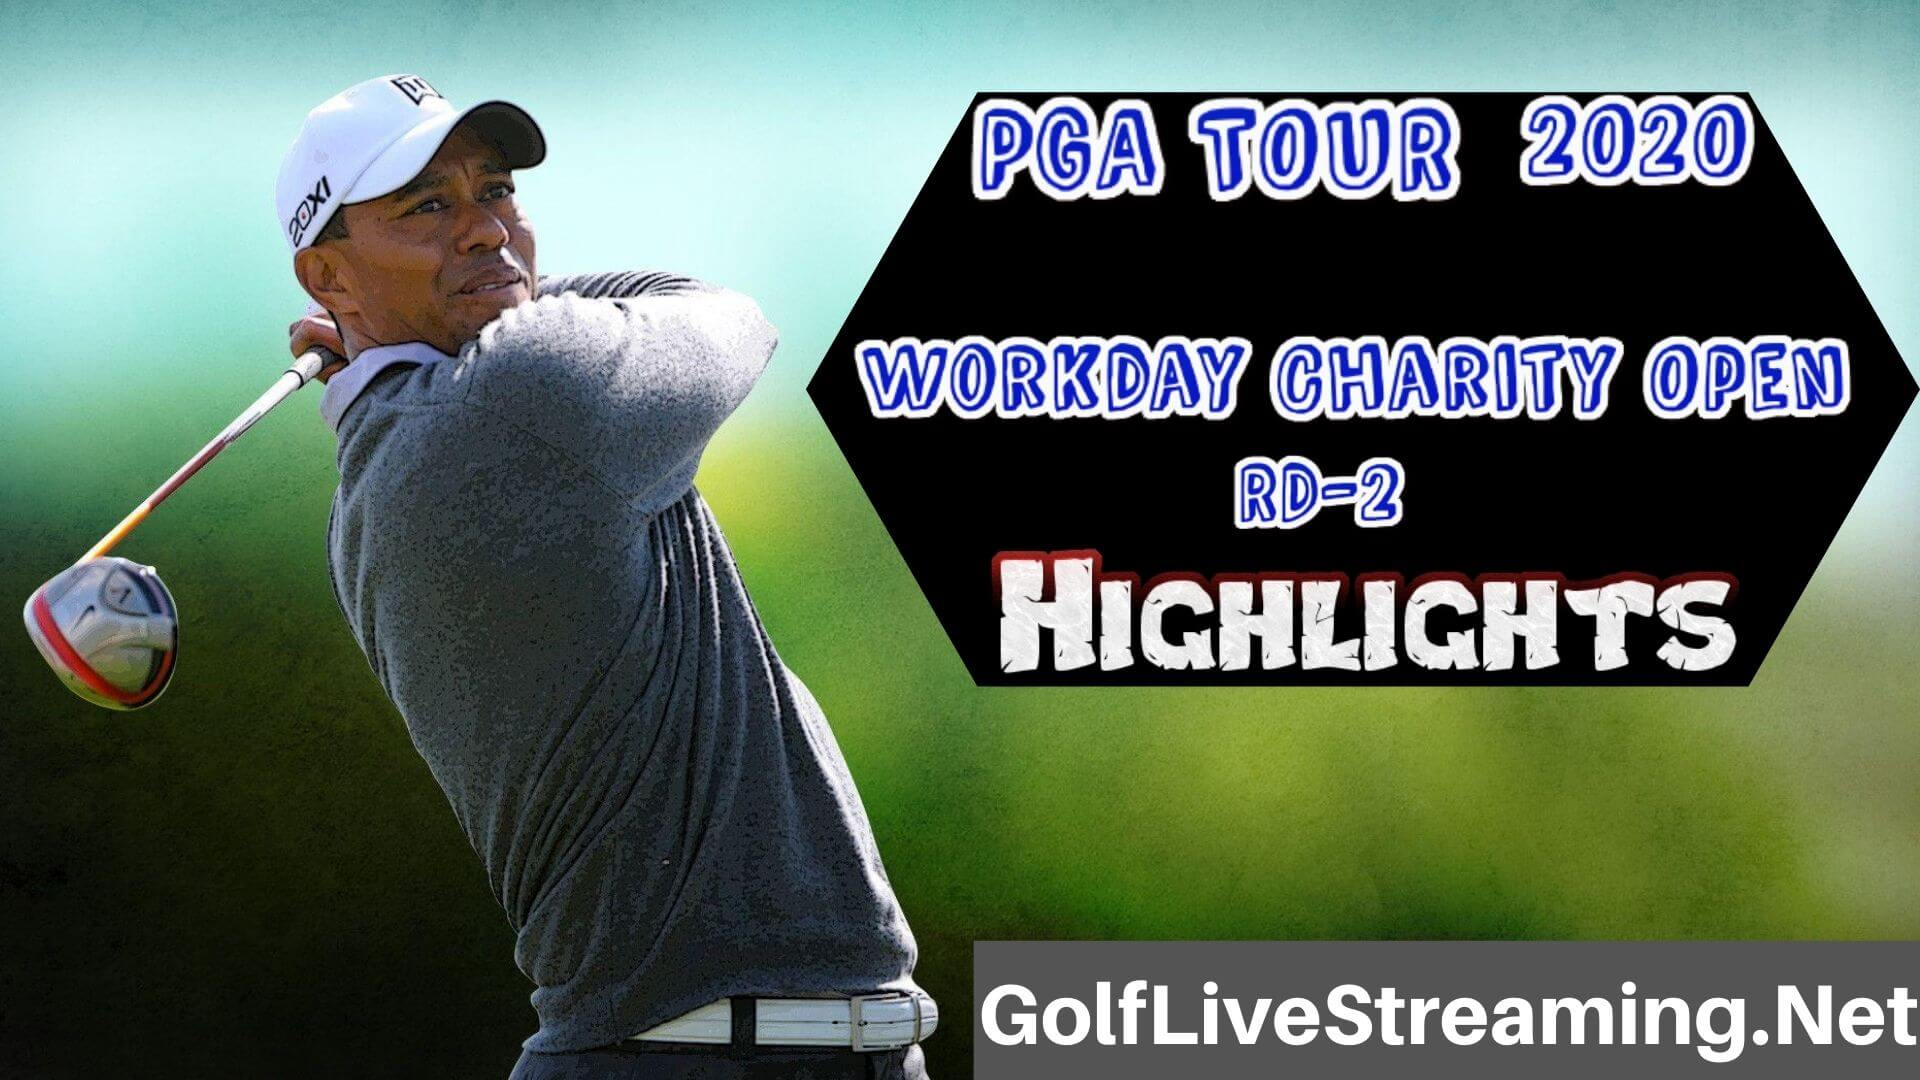 Workday Charity Open Rd 2 Highlights 2020 | PGA TOUR